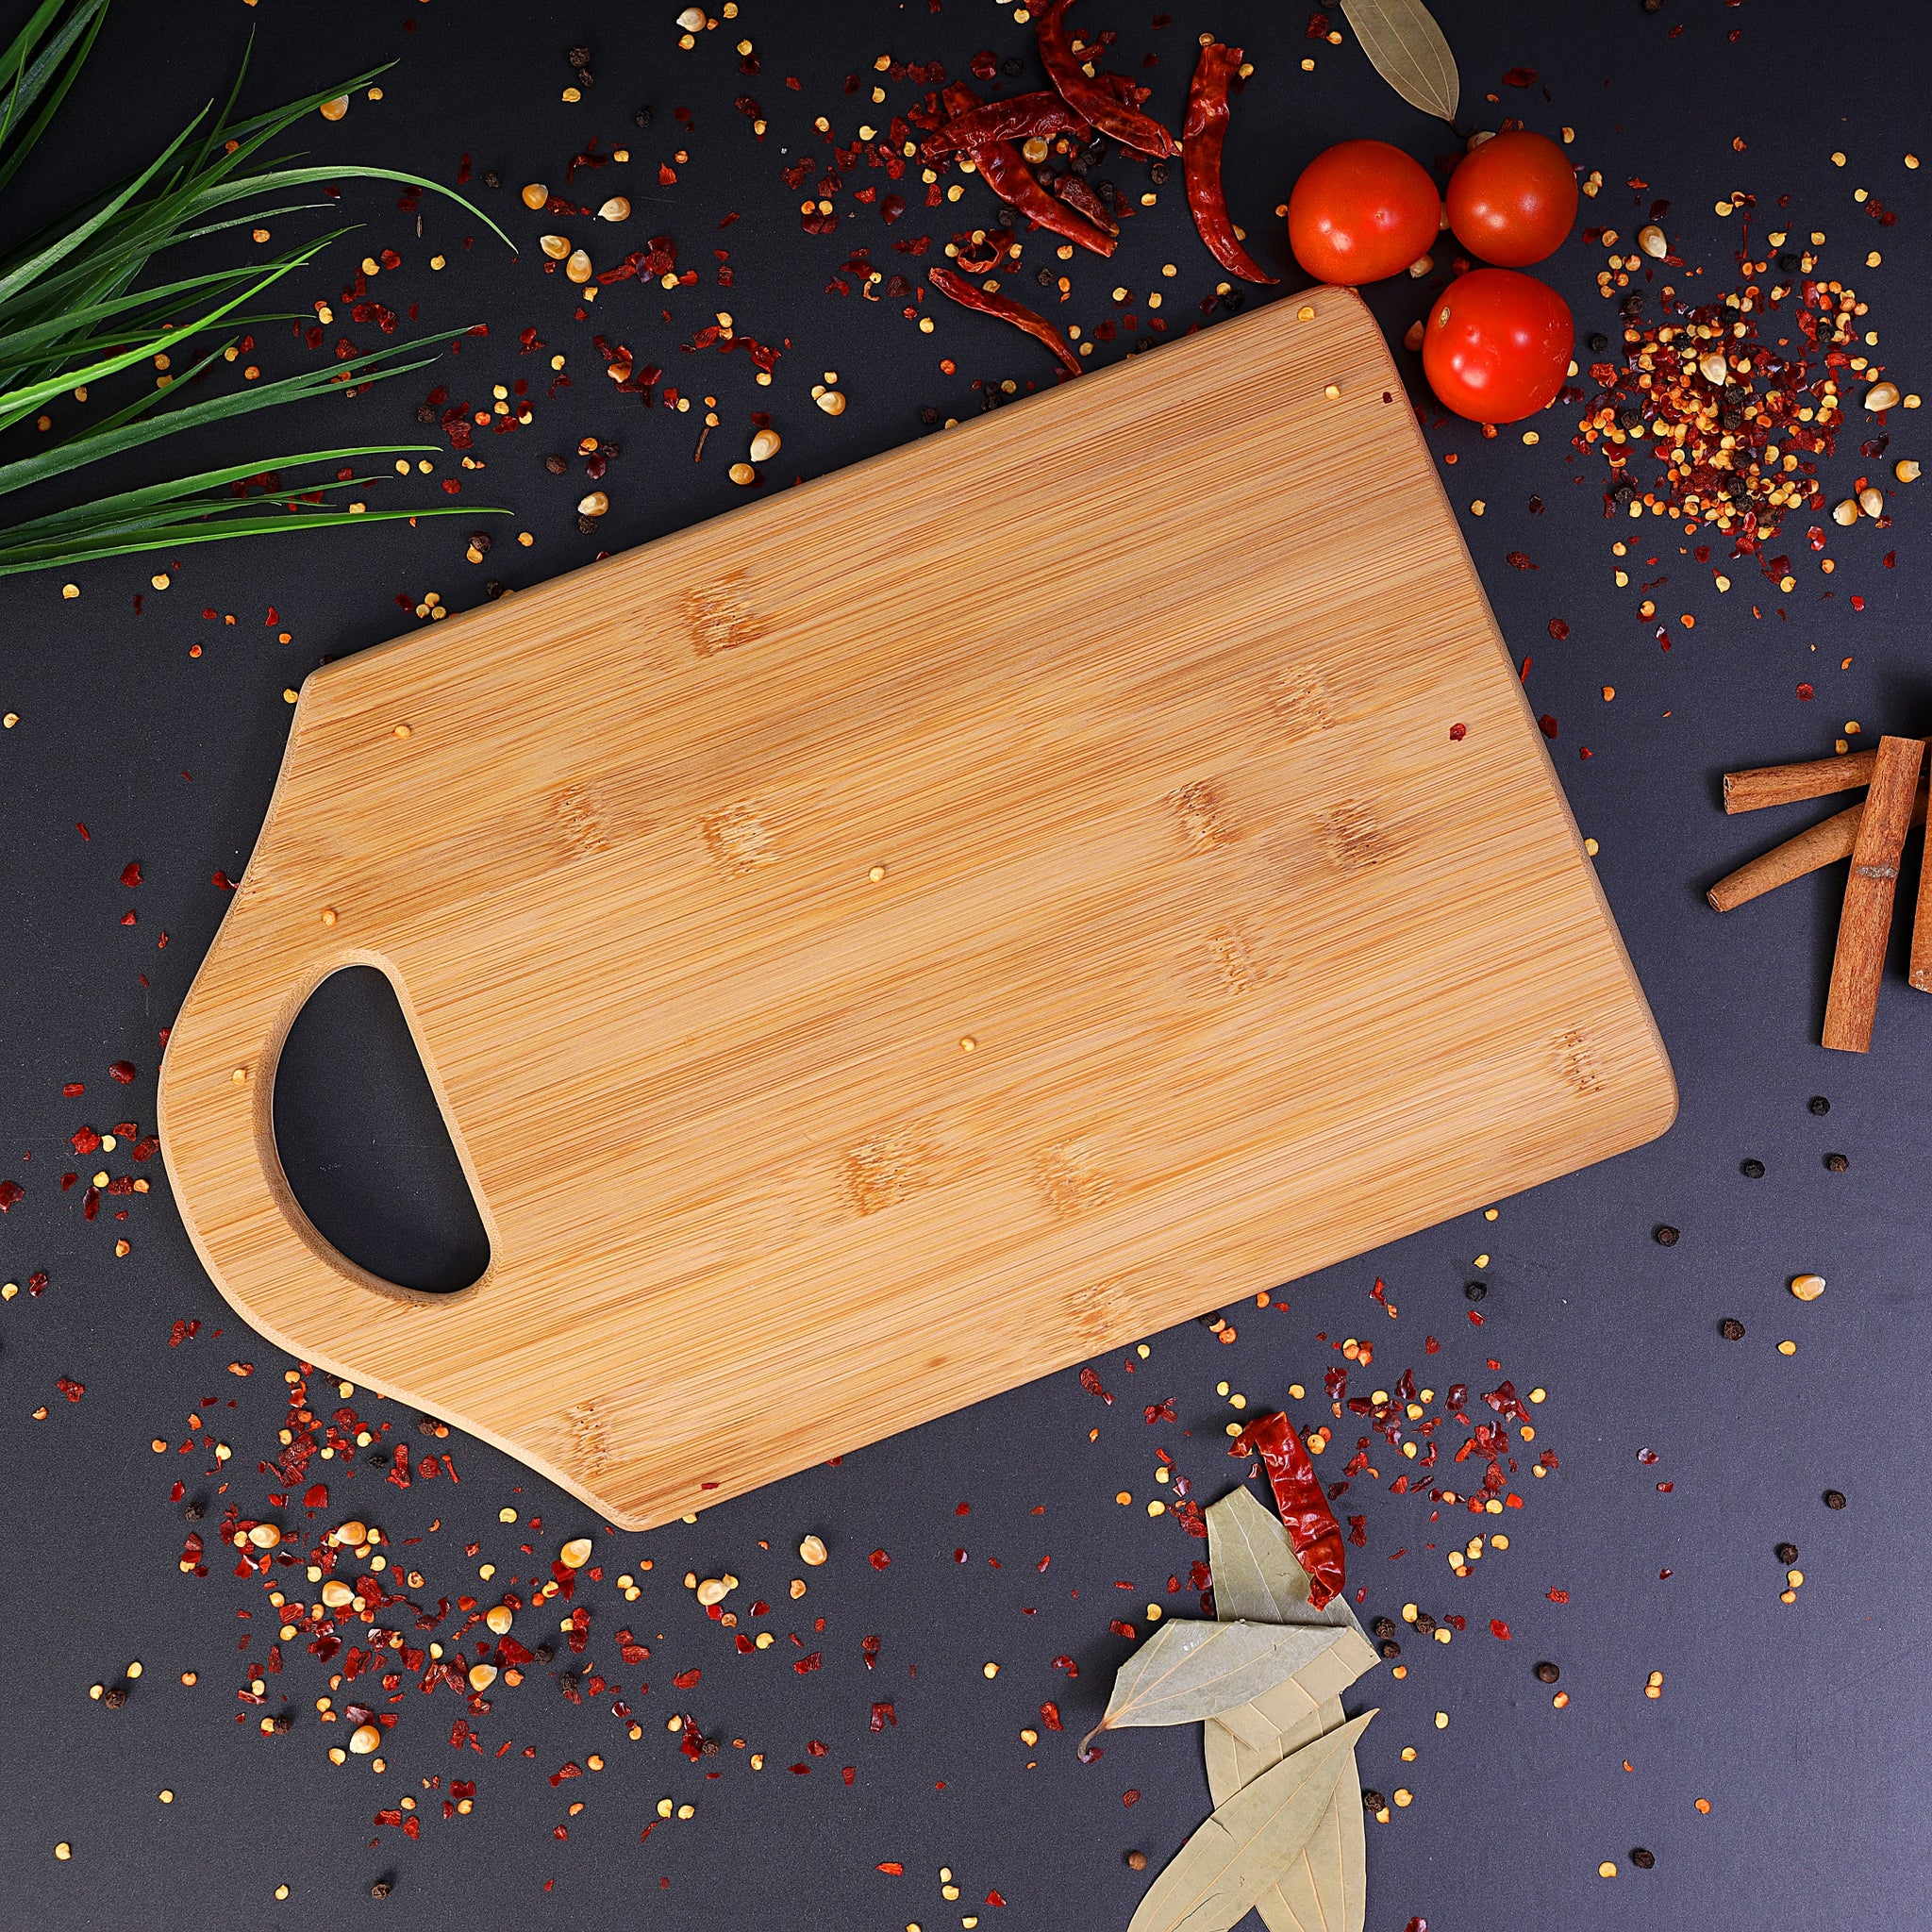 Wooden cutting board (35x25x1.6cm) 1x10